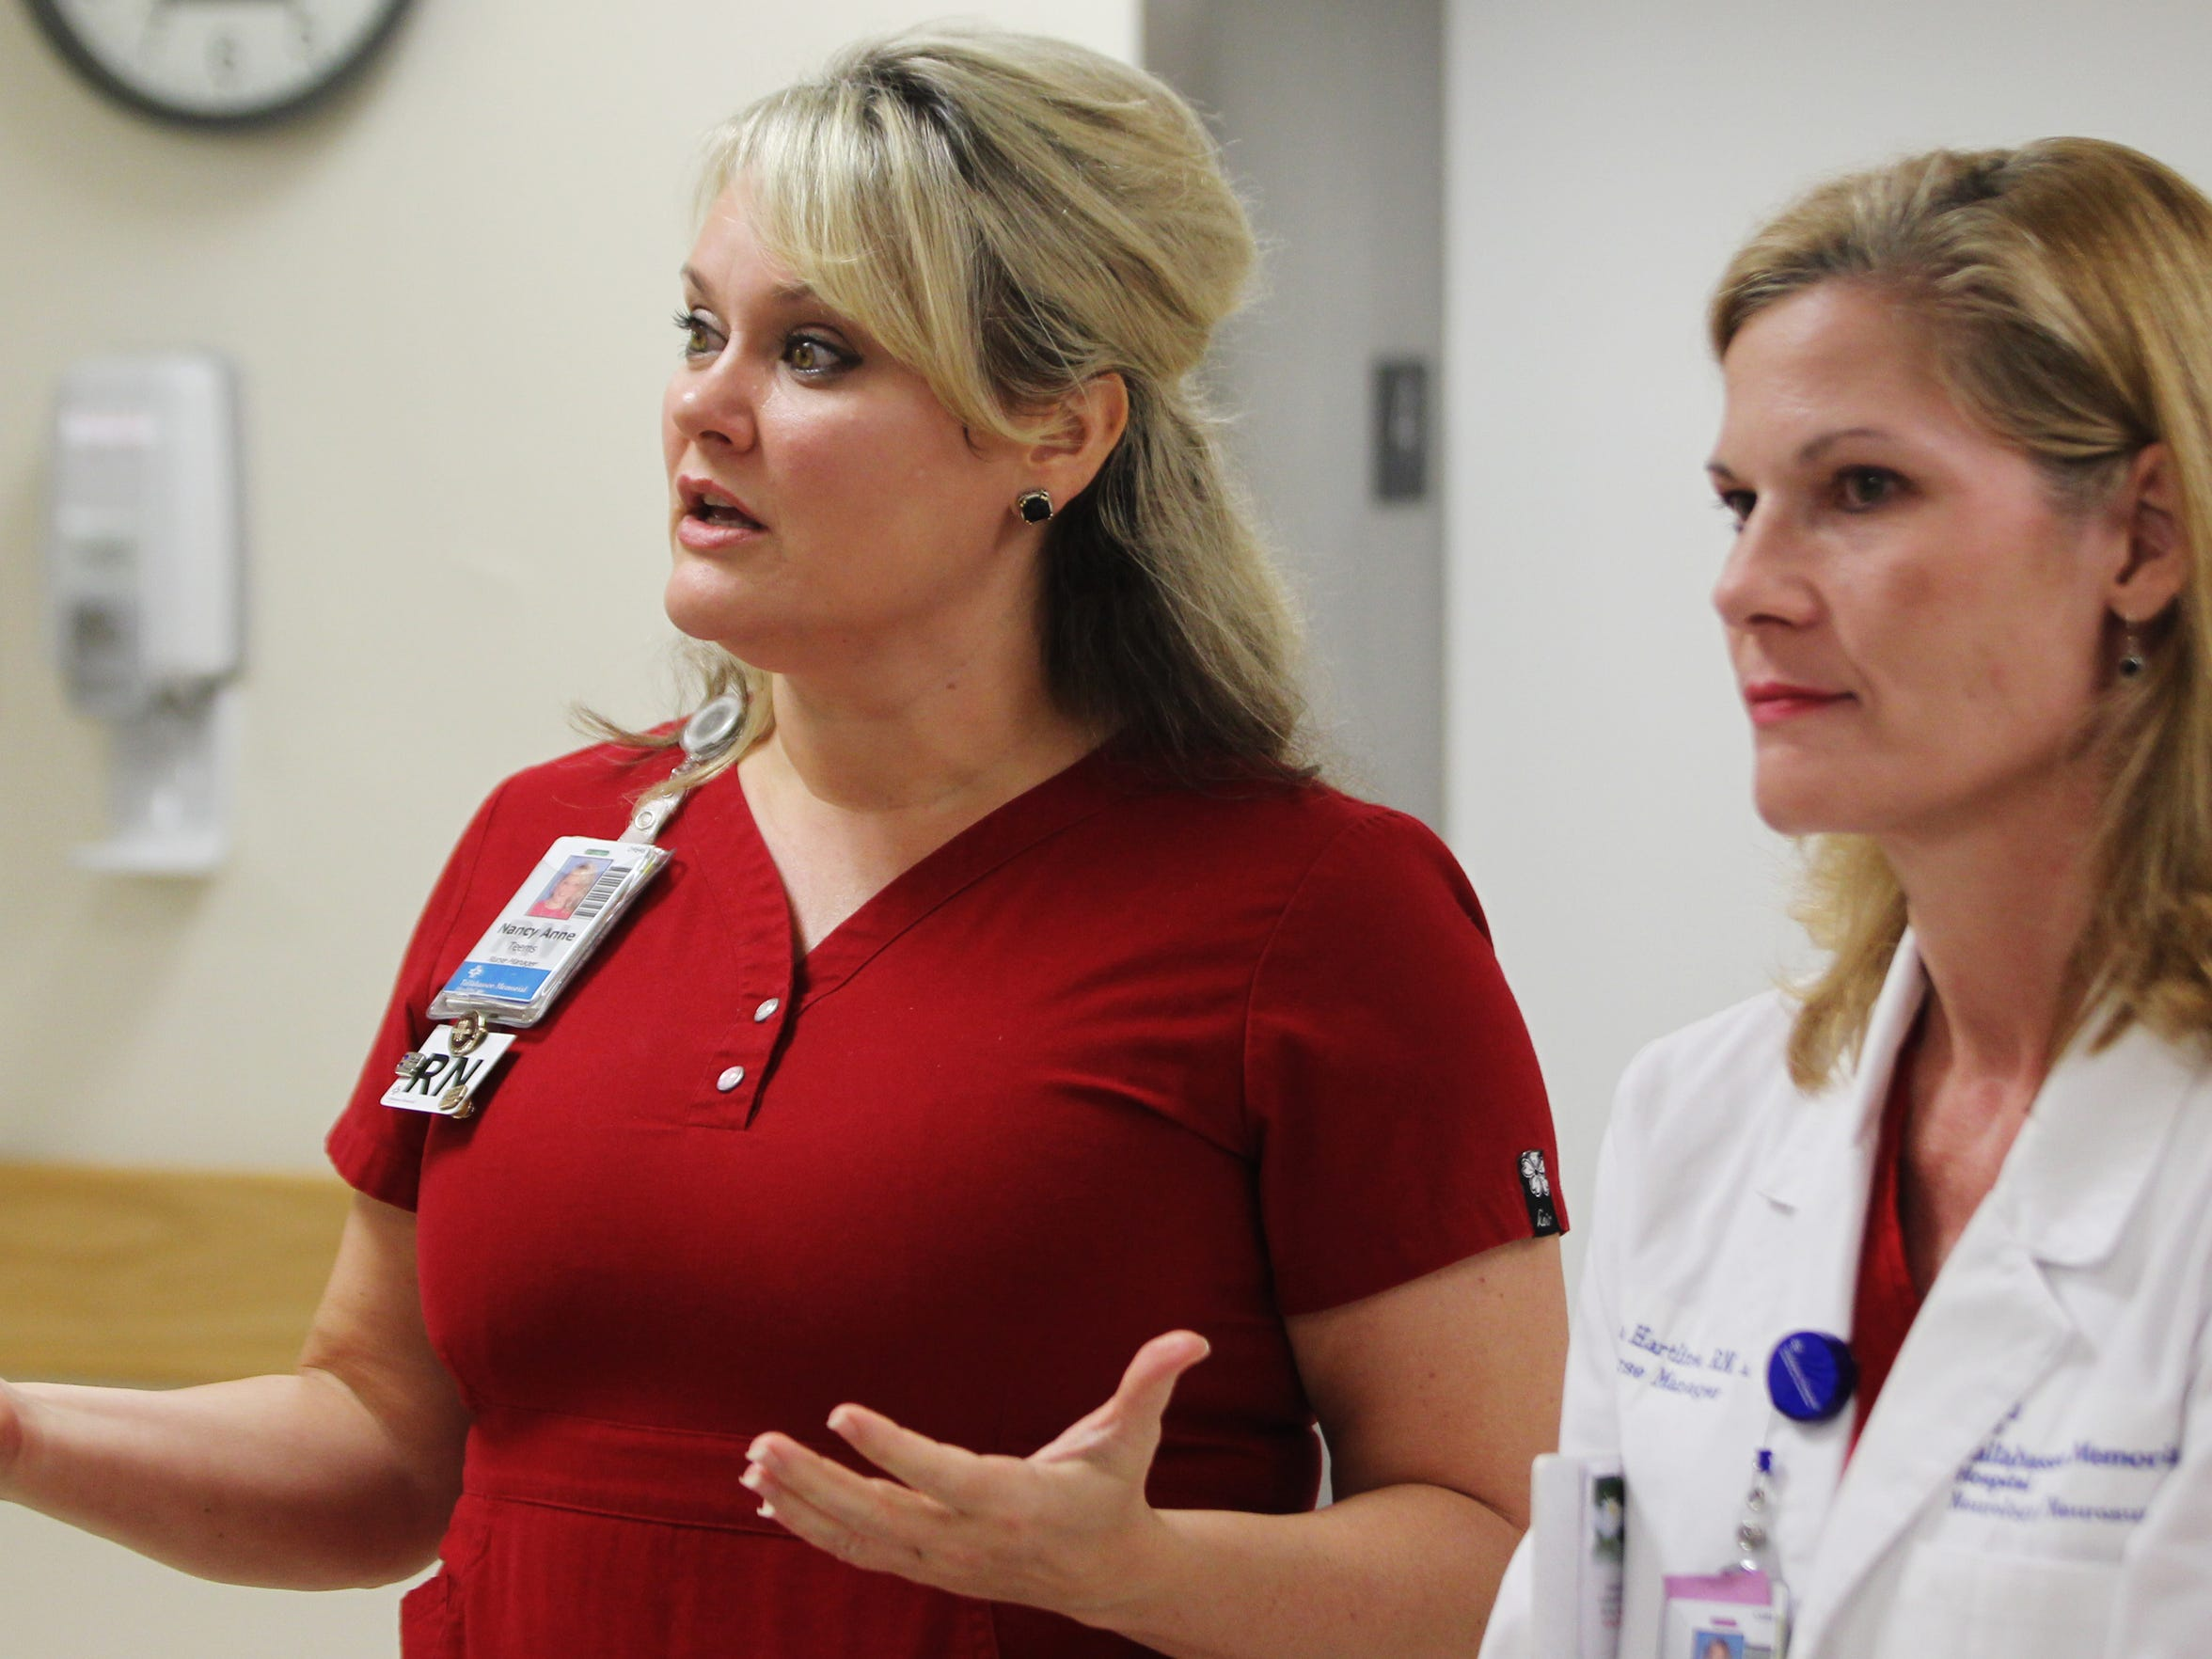 Tallahassee Memorial Hospital nurse managers Nancy Anne Teems, left, and Marsha Hartline talk with a reporter during an interview. Nationally, nursing is a high-demand profession wrought with vacancies.